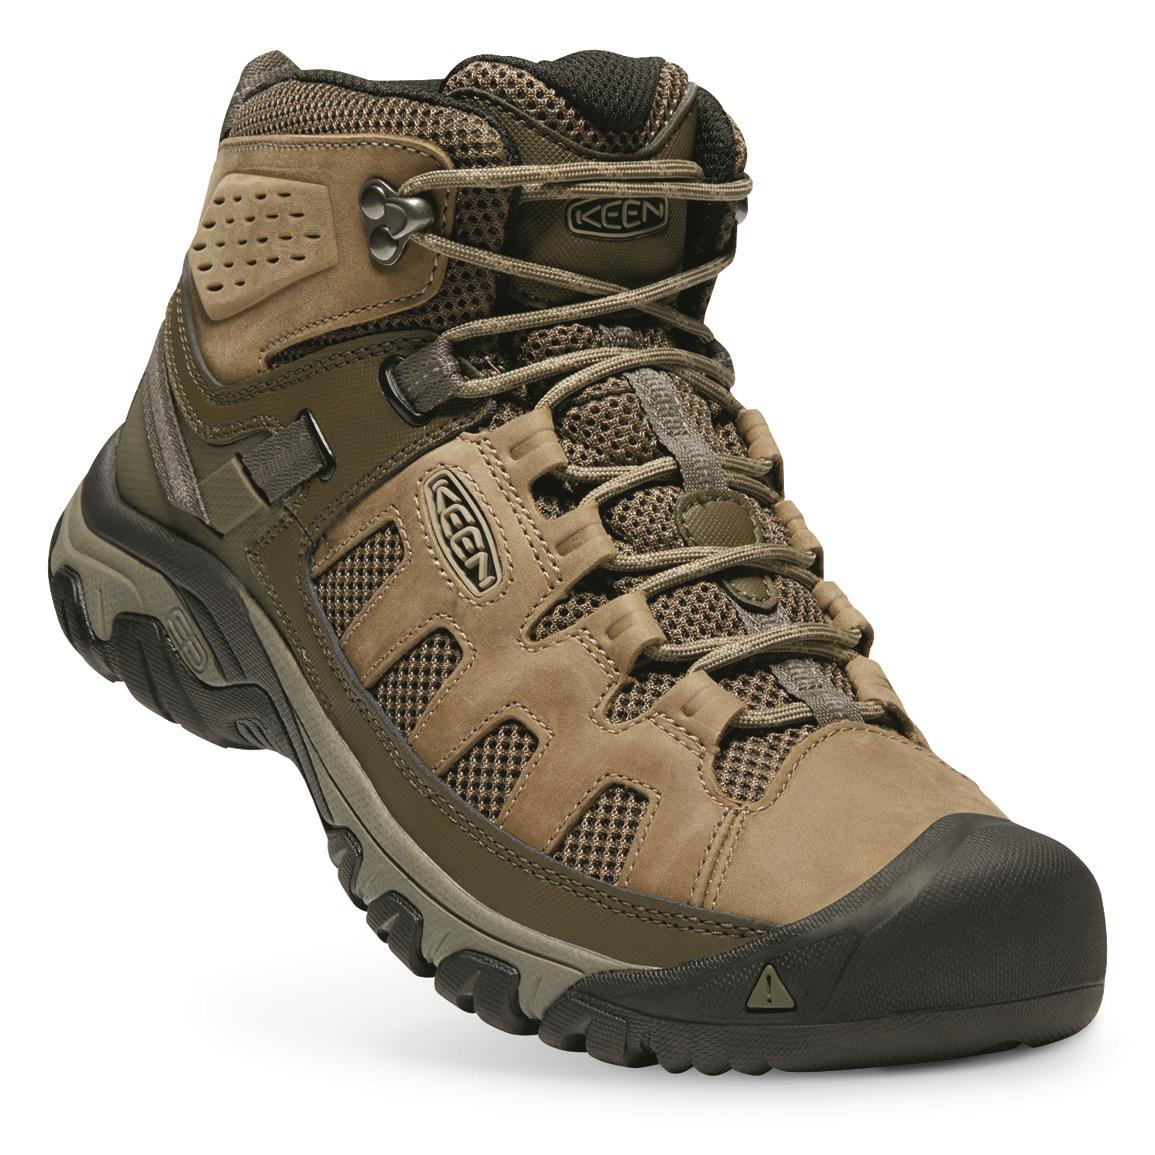 KEEN Men's Targhee Vent Mid Hiking Boots, Olivia/bungee Cord